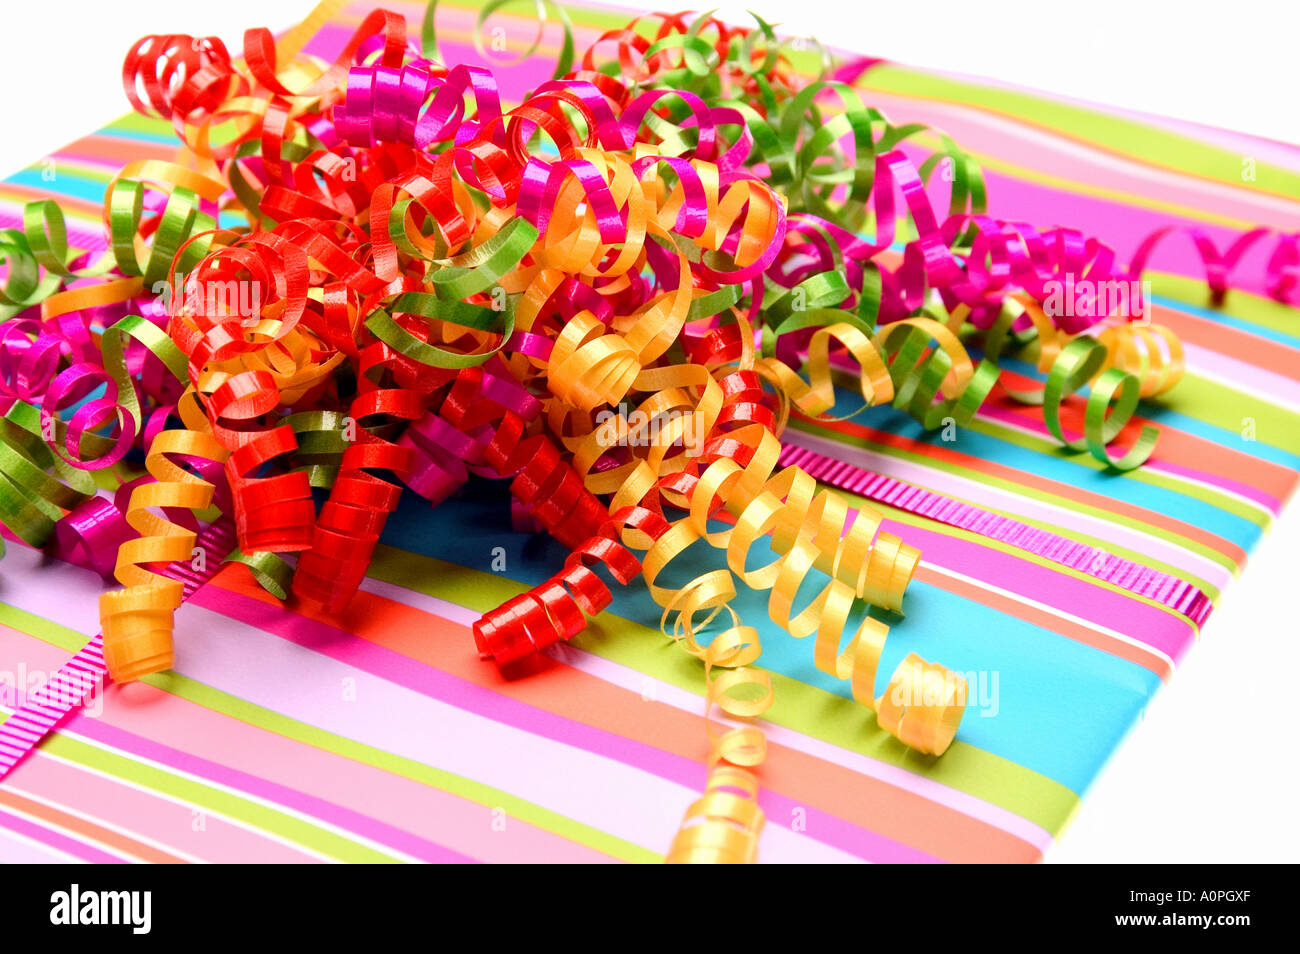 Wrapped Present - Stock Image